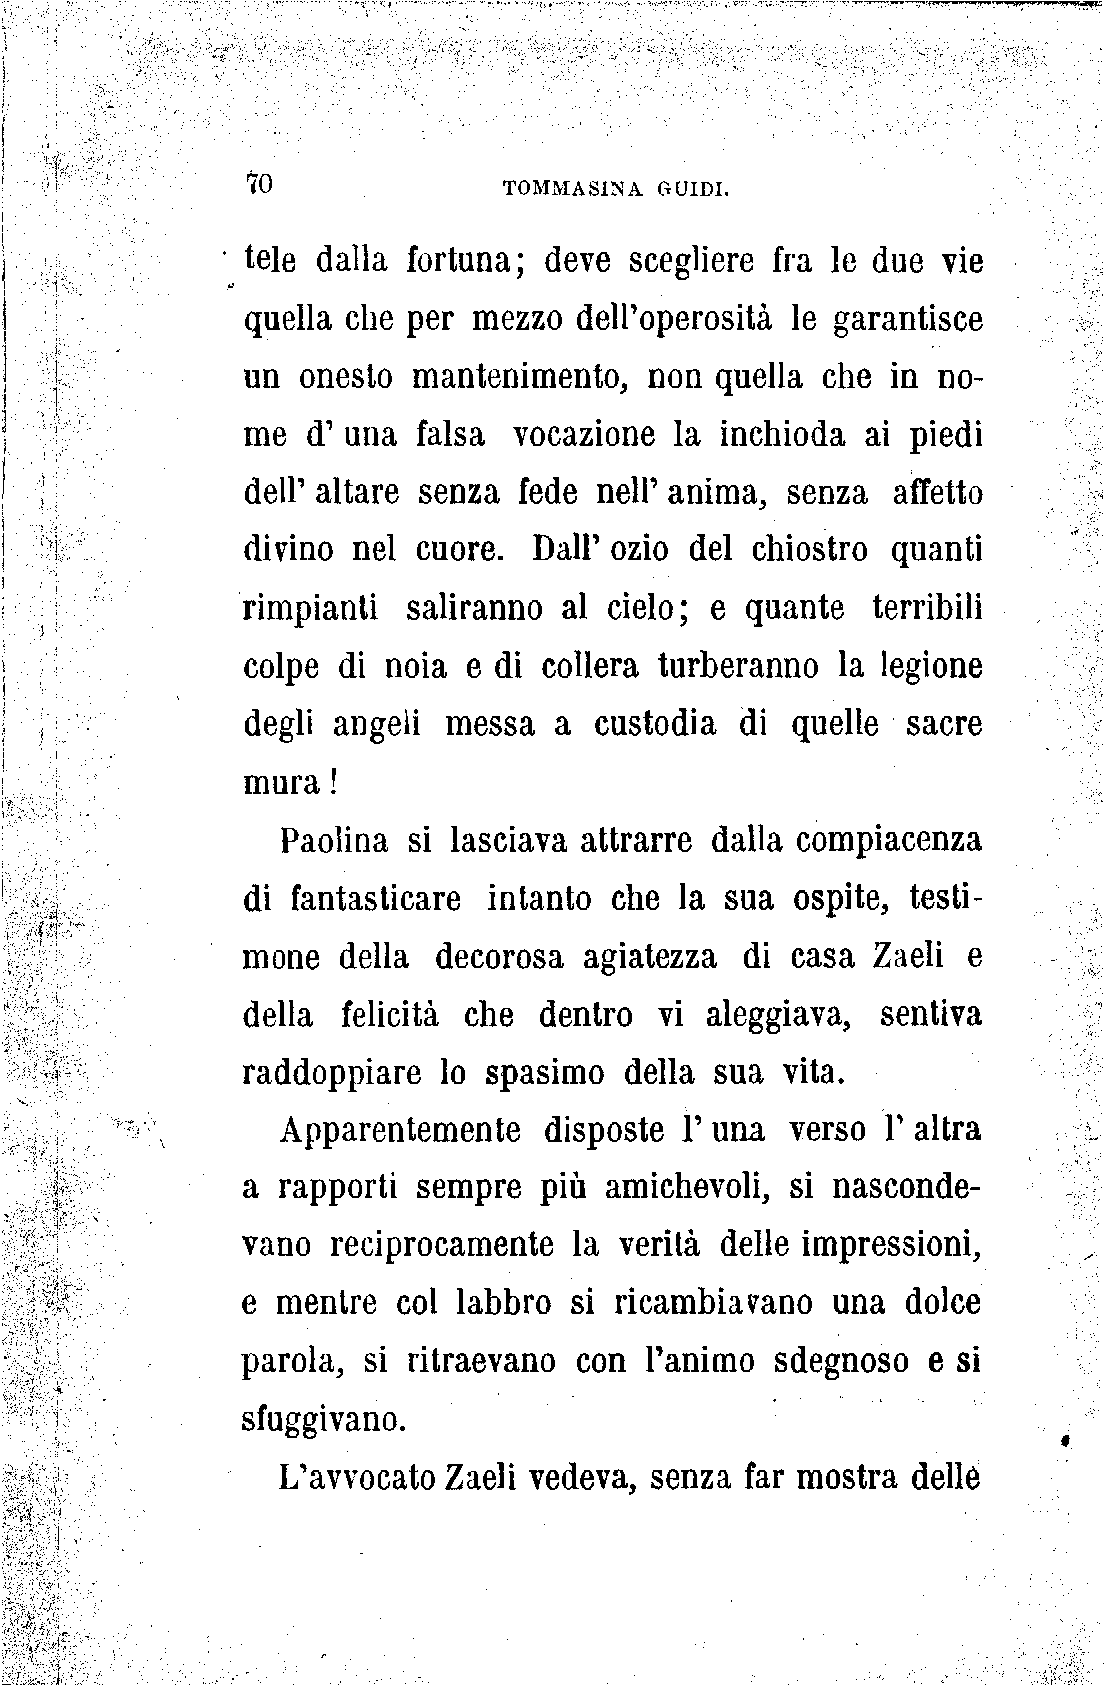 Index of /sites/gutenberg.org/2/2/5/0/22505/22505-page-images